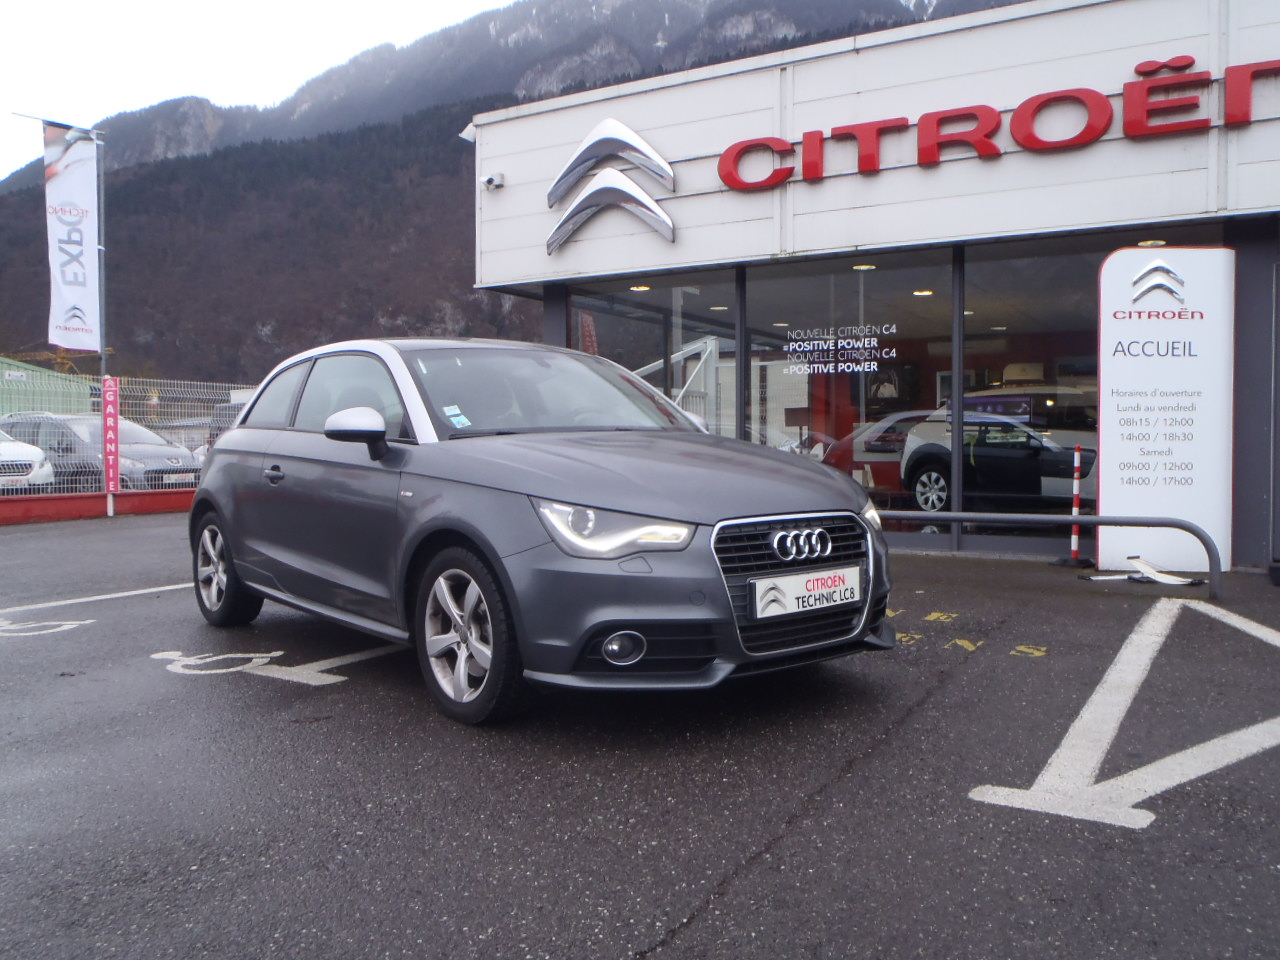 voiture audi a1 2 0 tdi 143 s line occasion diesel 2012 50900 km 17900 bonneville. Black Bedroom Furniture Sets. Home Design Ideas